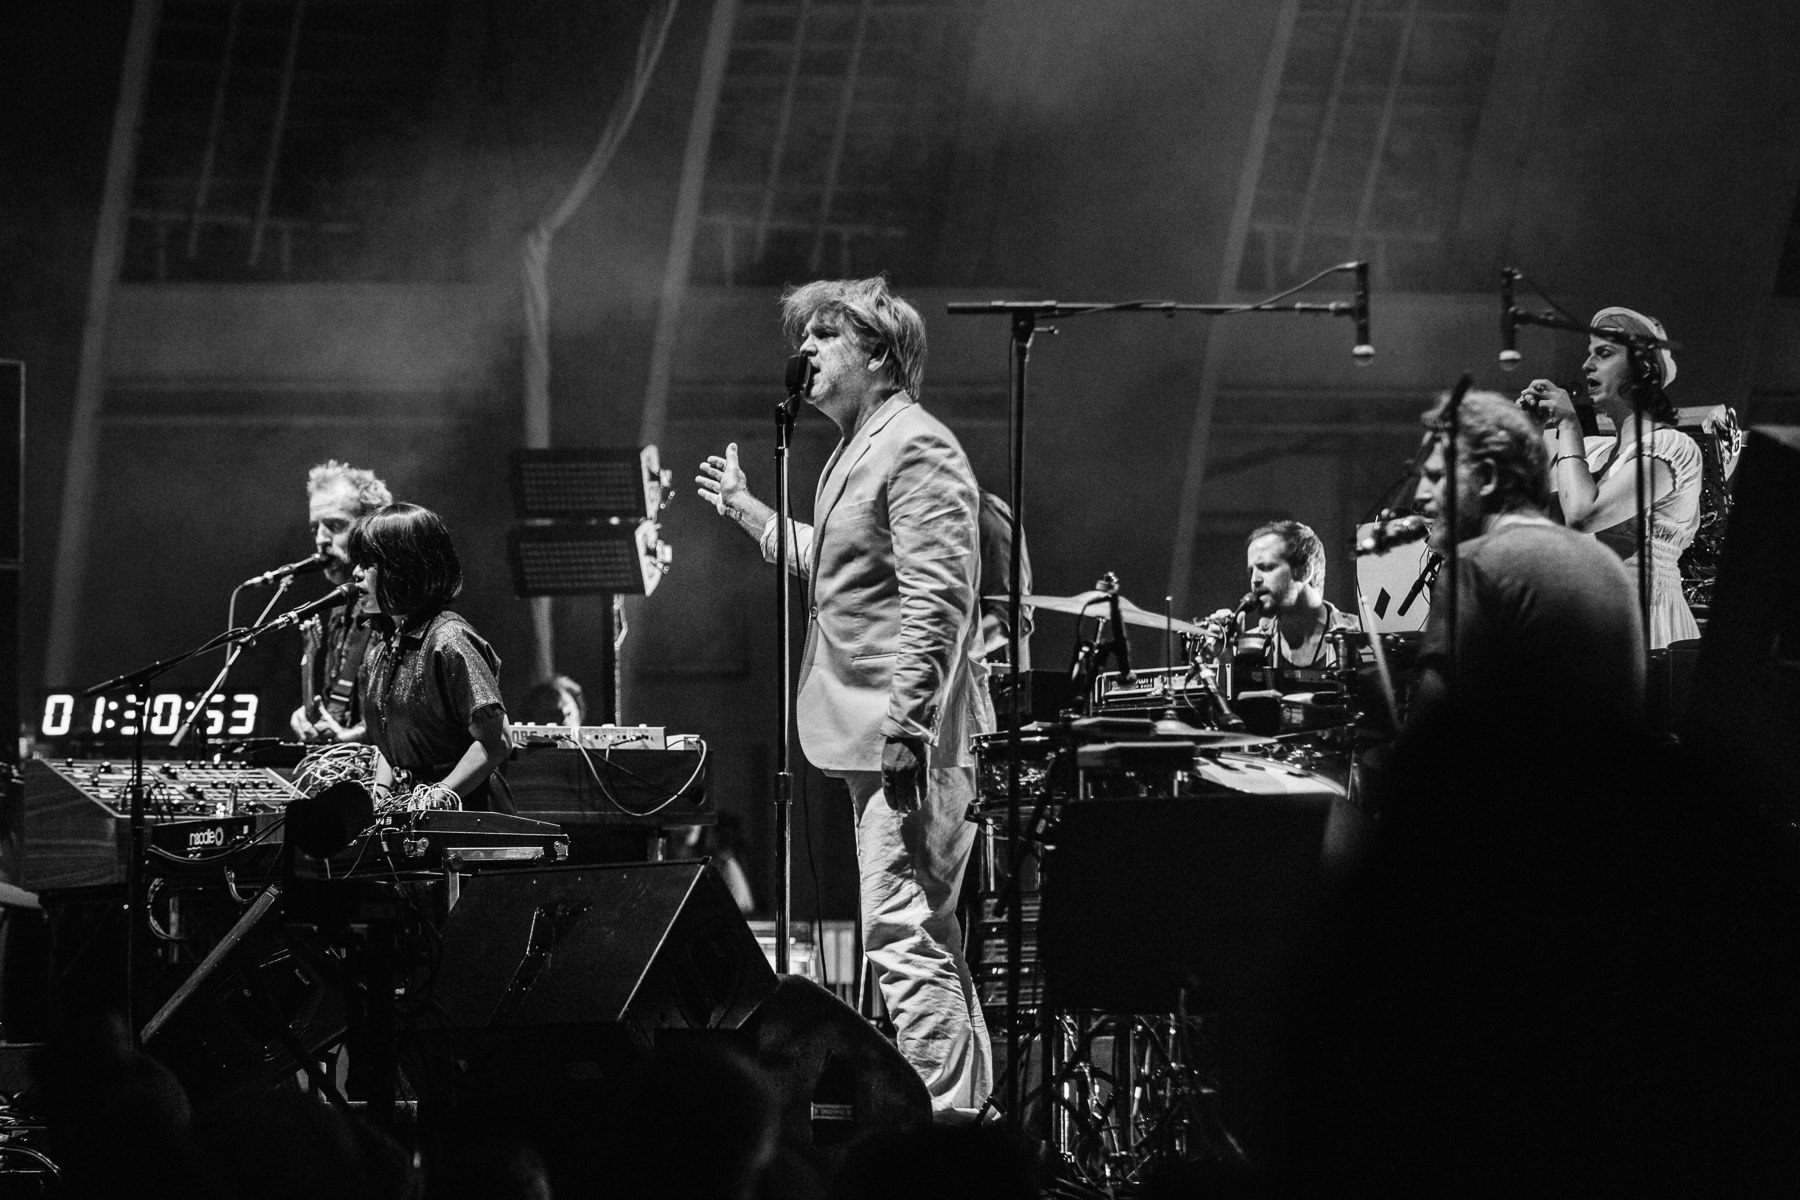 180506-kirby-gladstein-photograpy-LCD-Soundsystem-Hollywood-Bowl-LA-7564-2.jpg